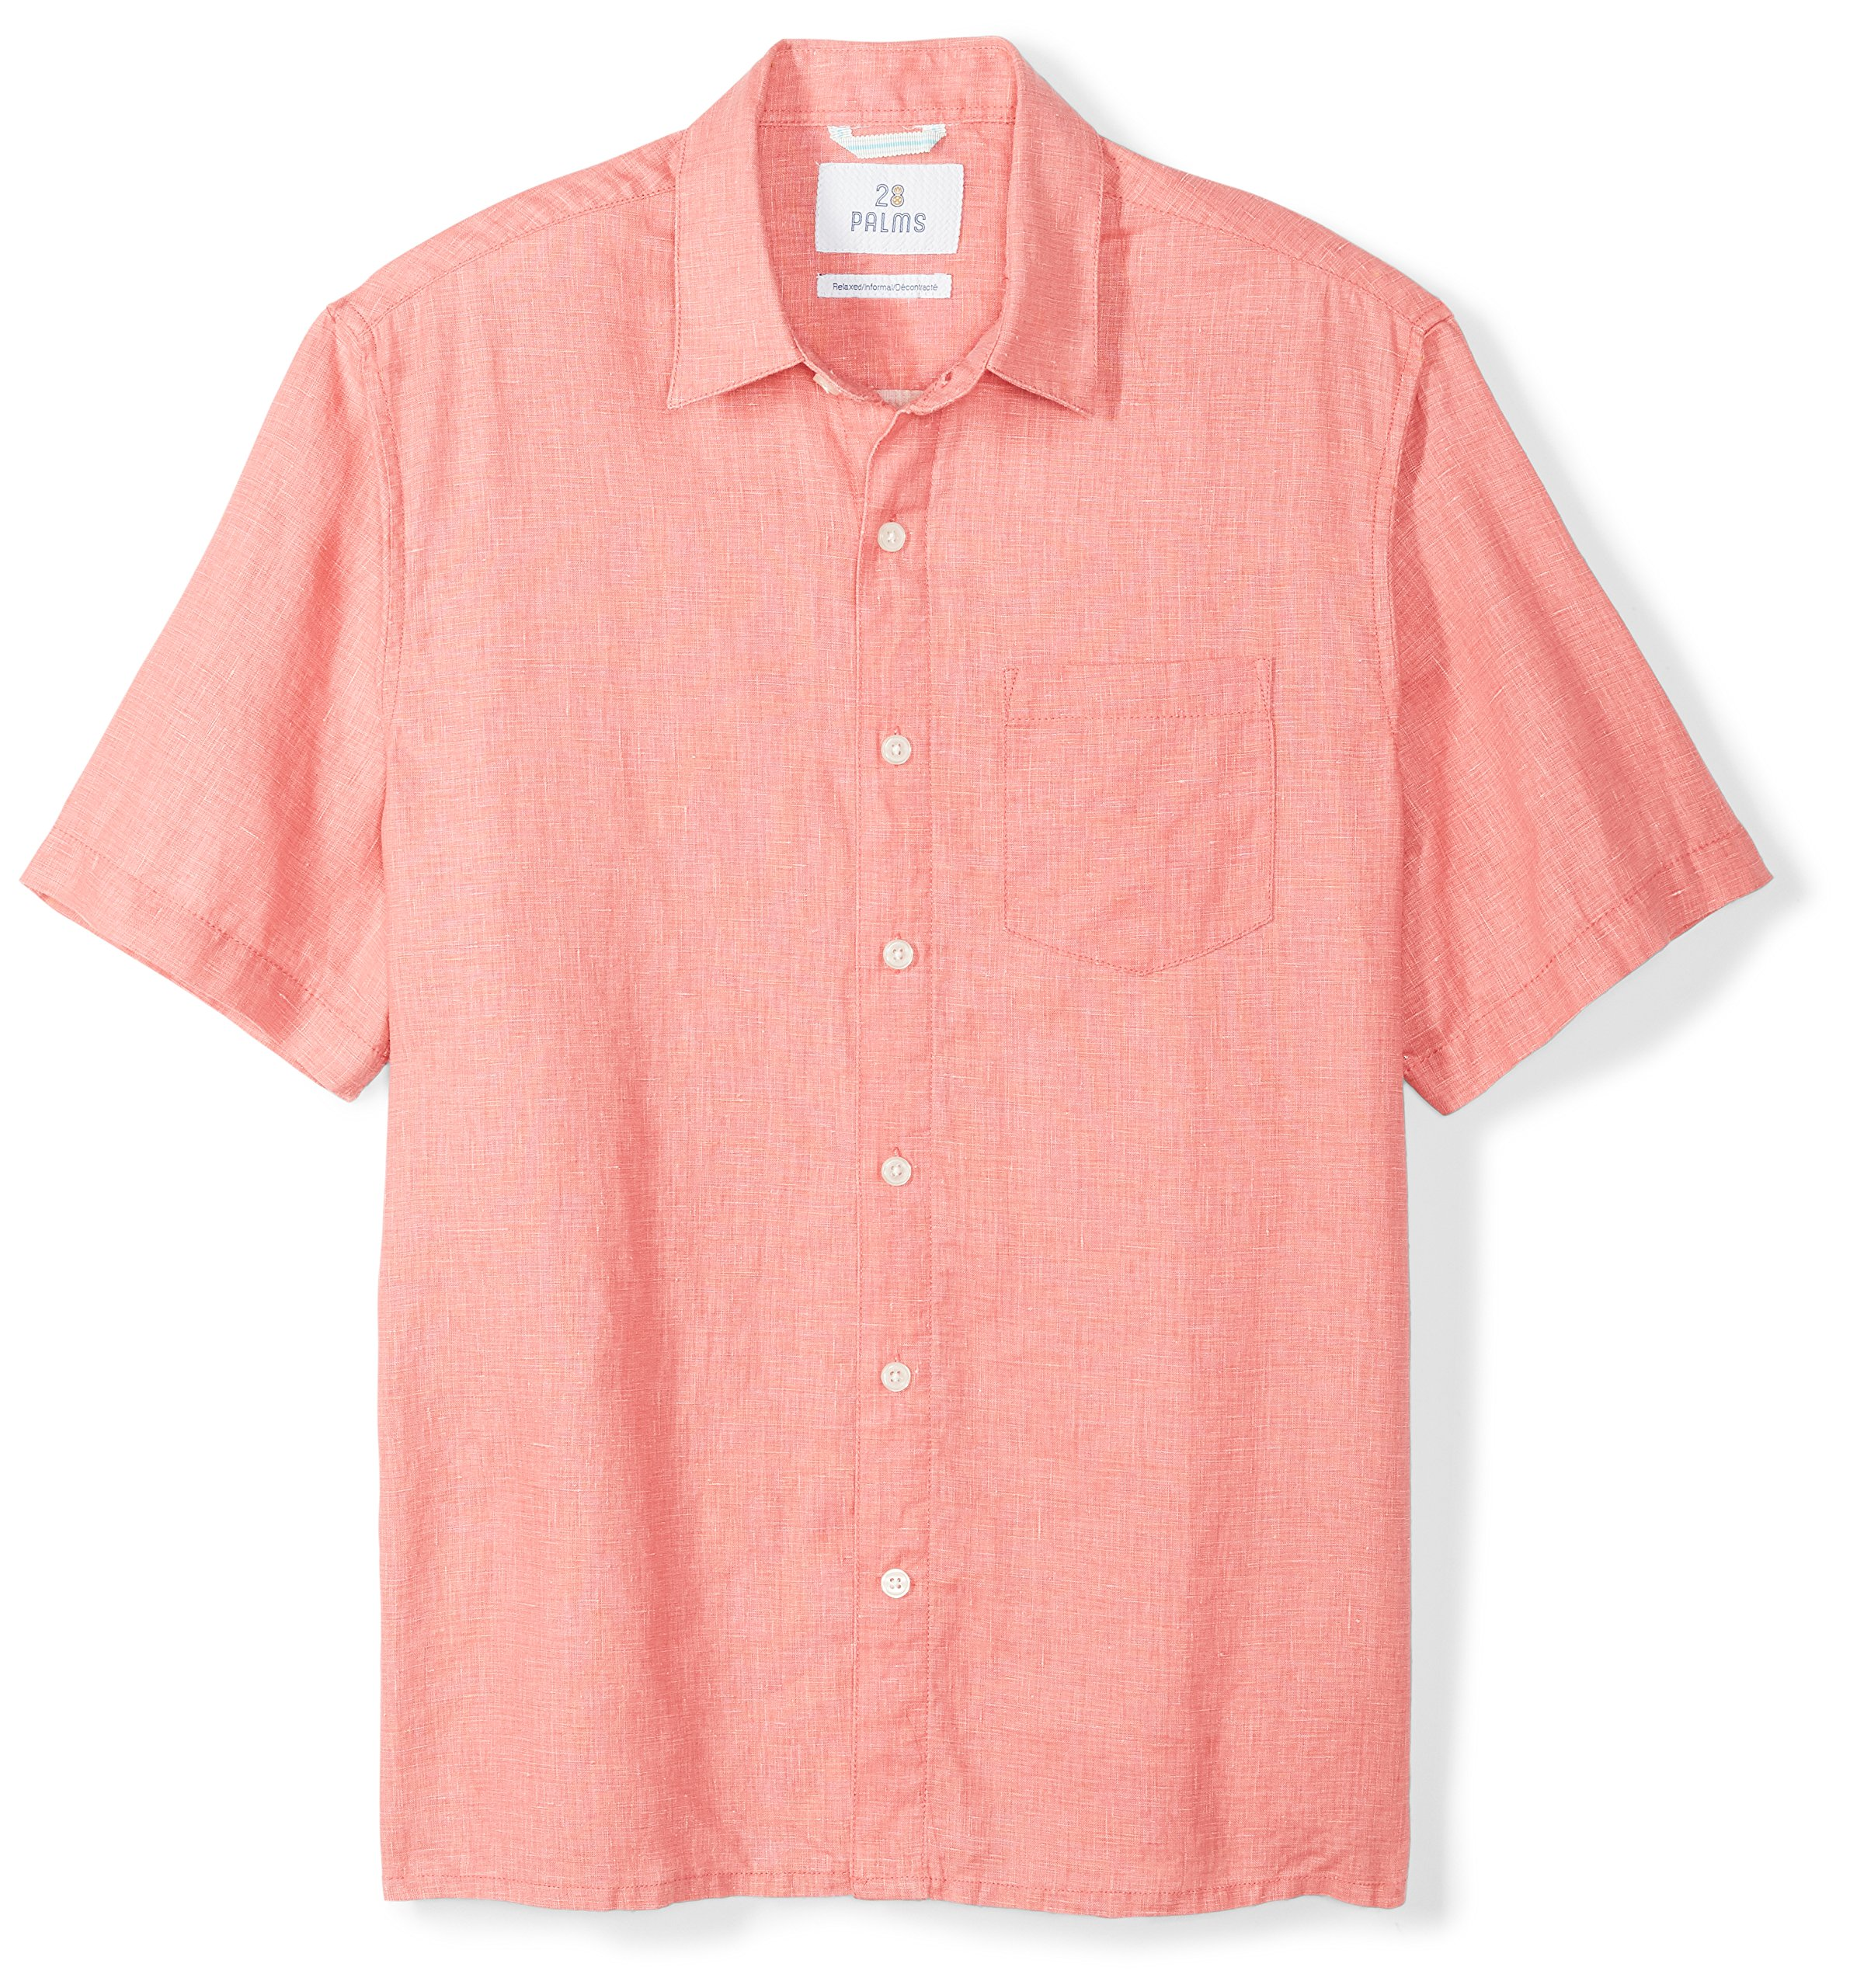 28 Palms Men's Relaxed-Fit Short-Sleeve 100% Linen Shirt, Coral, X-Large